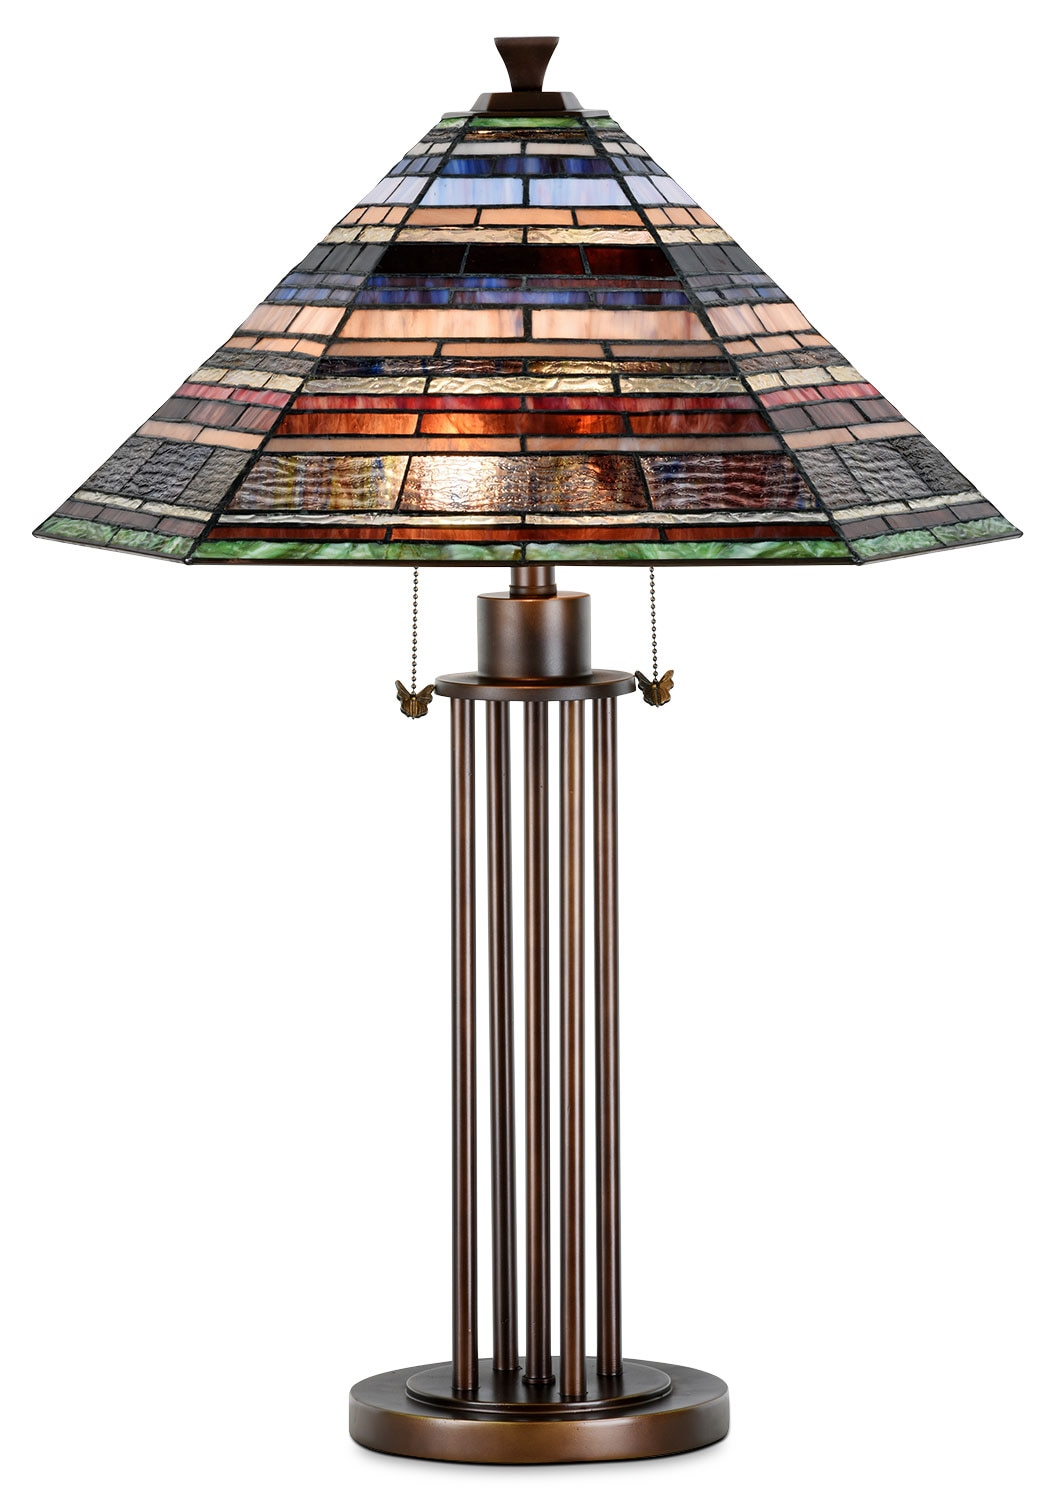 Home Accessories - Las Brisas Table Lamp